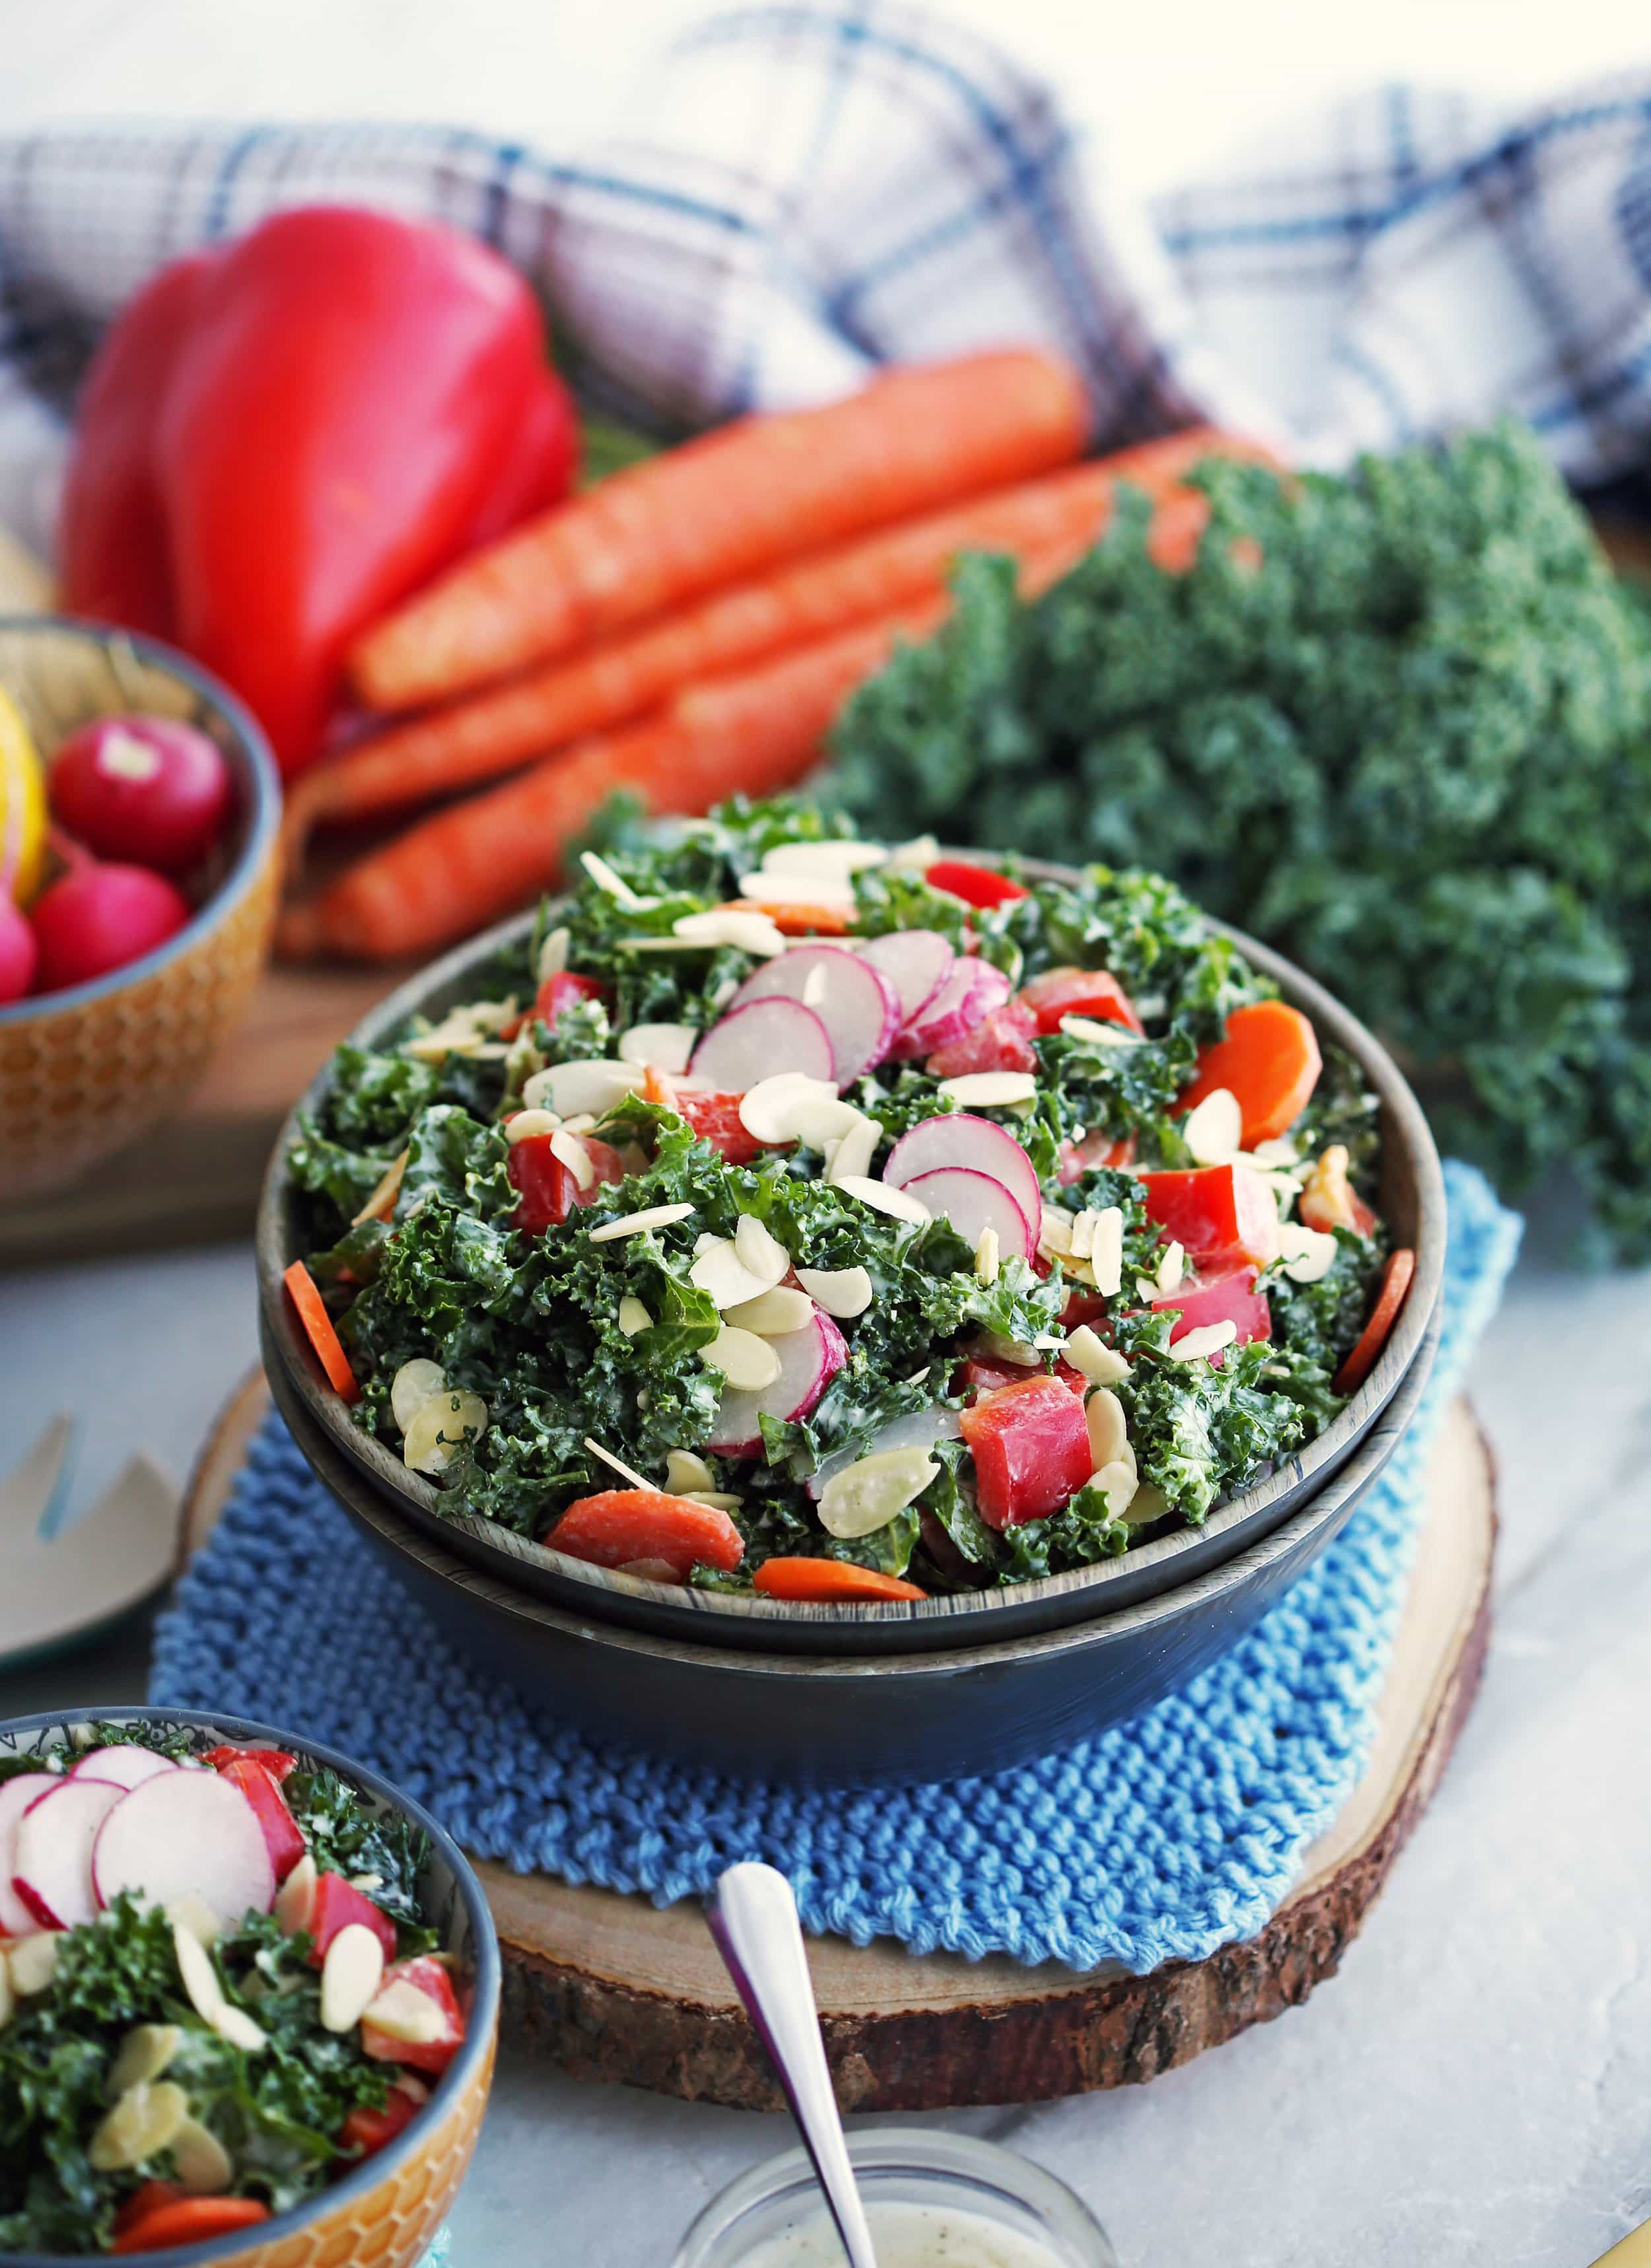 Crunchy salad made with kale, carrots, radishes, peppers, almonds, and parmesan yogurt dressing in a wooden bowl.